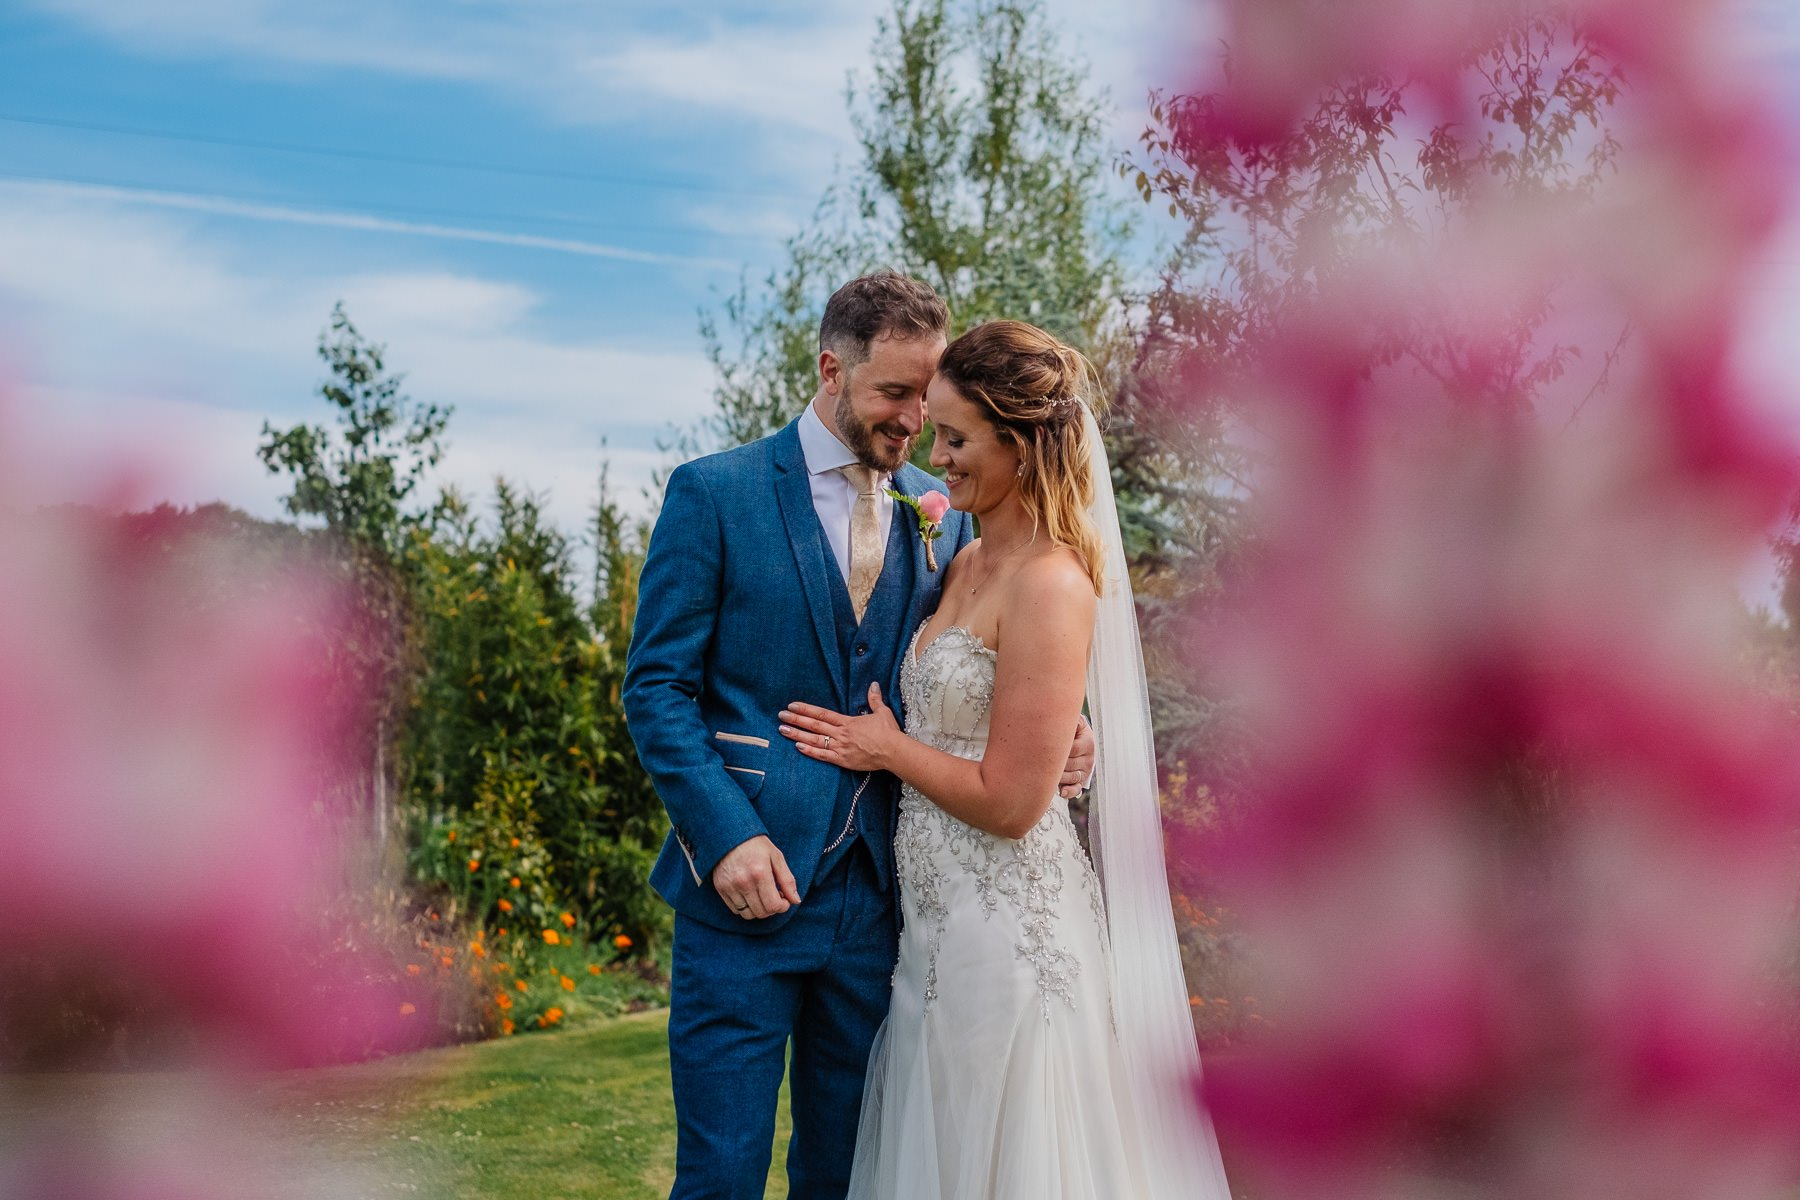 Colourful bride and groom photo